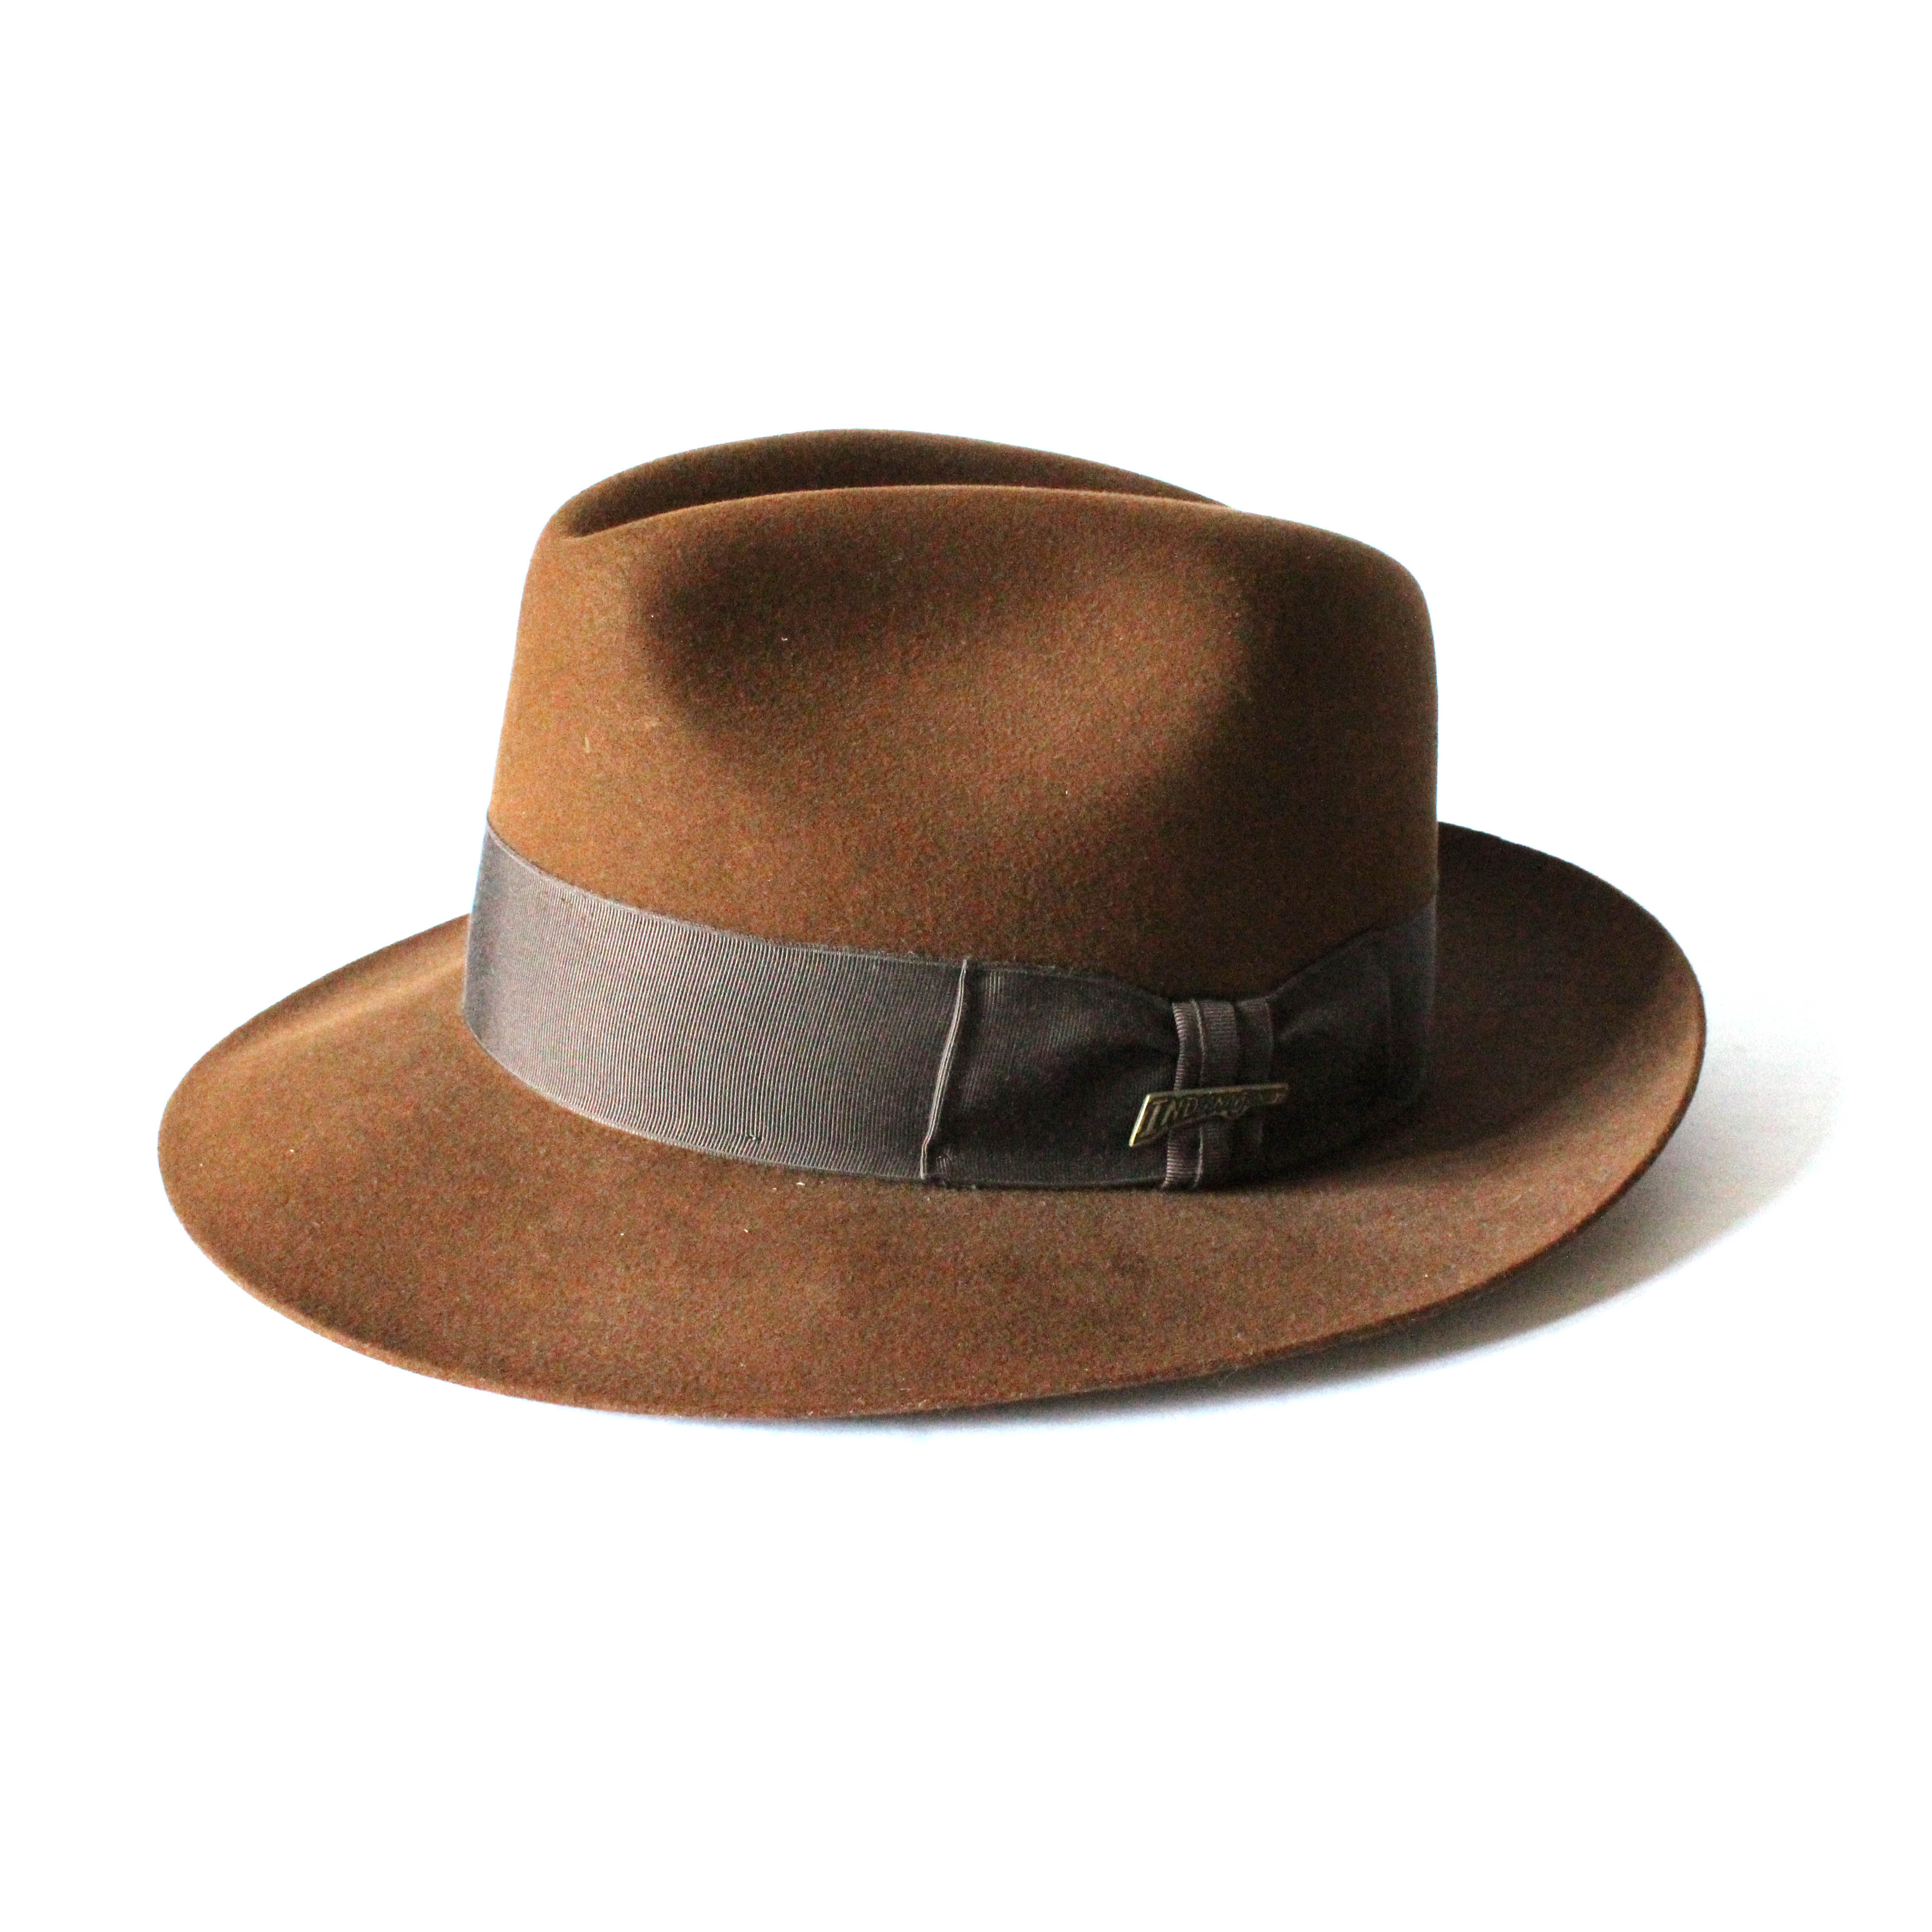 b9e10a549 promo code for indiana jones hat stetson d3e5e bc540